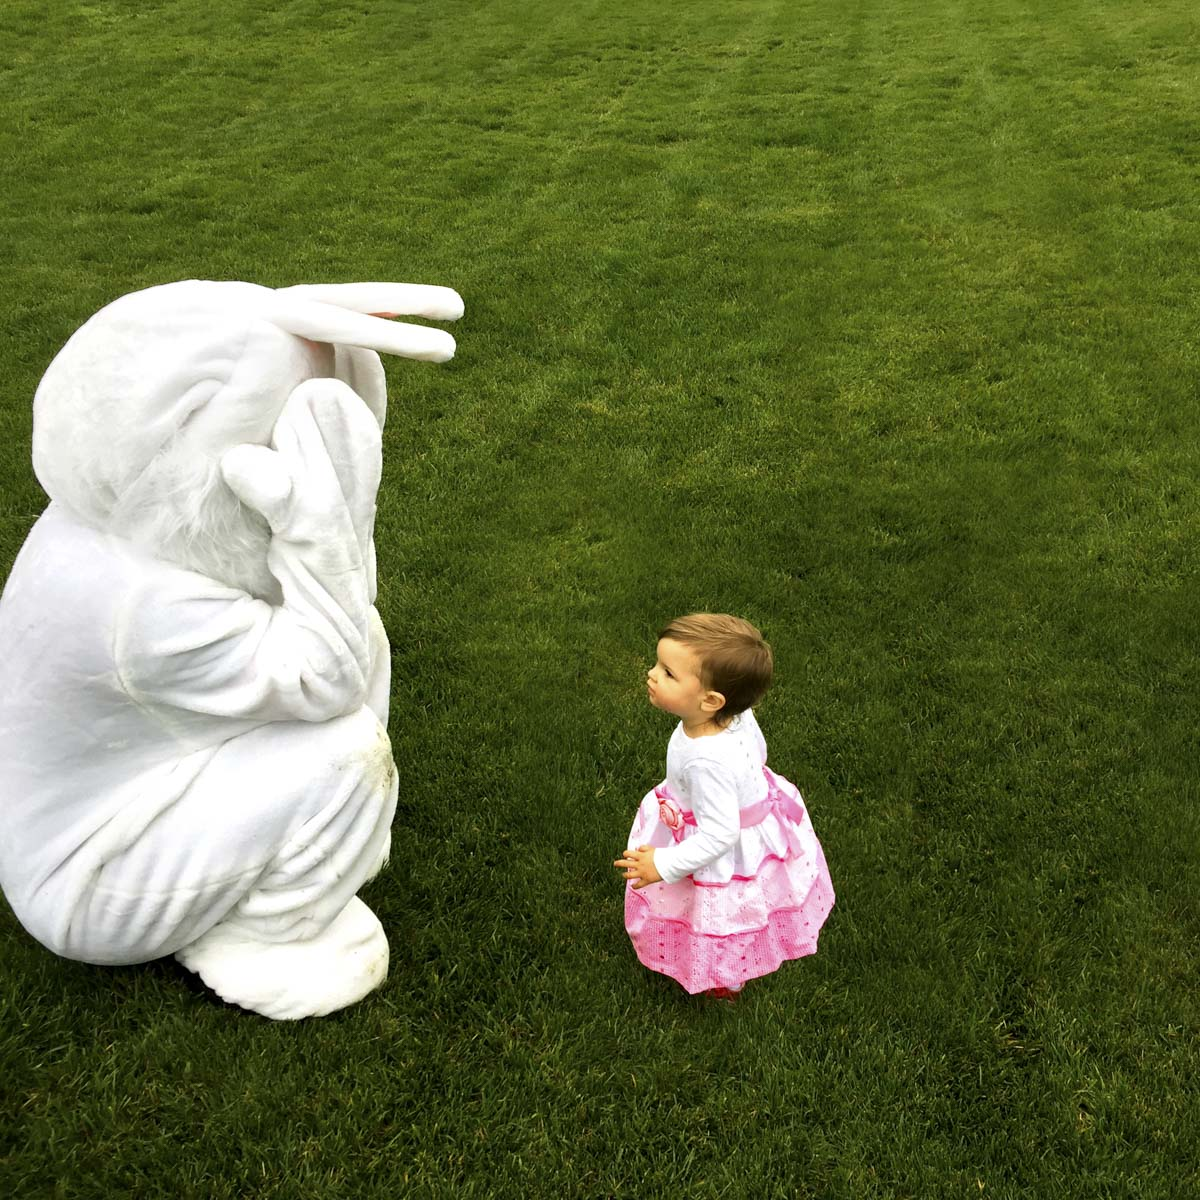 Easter bunny playing peek a boo with a child